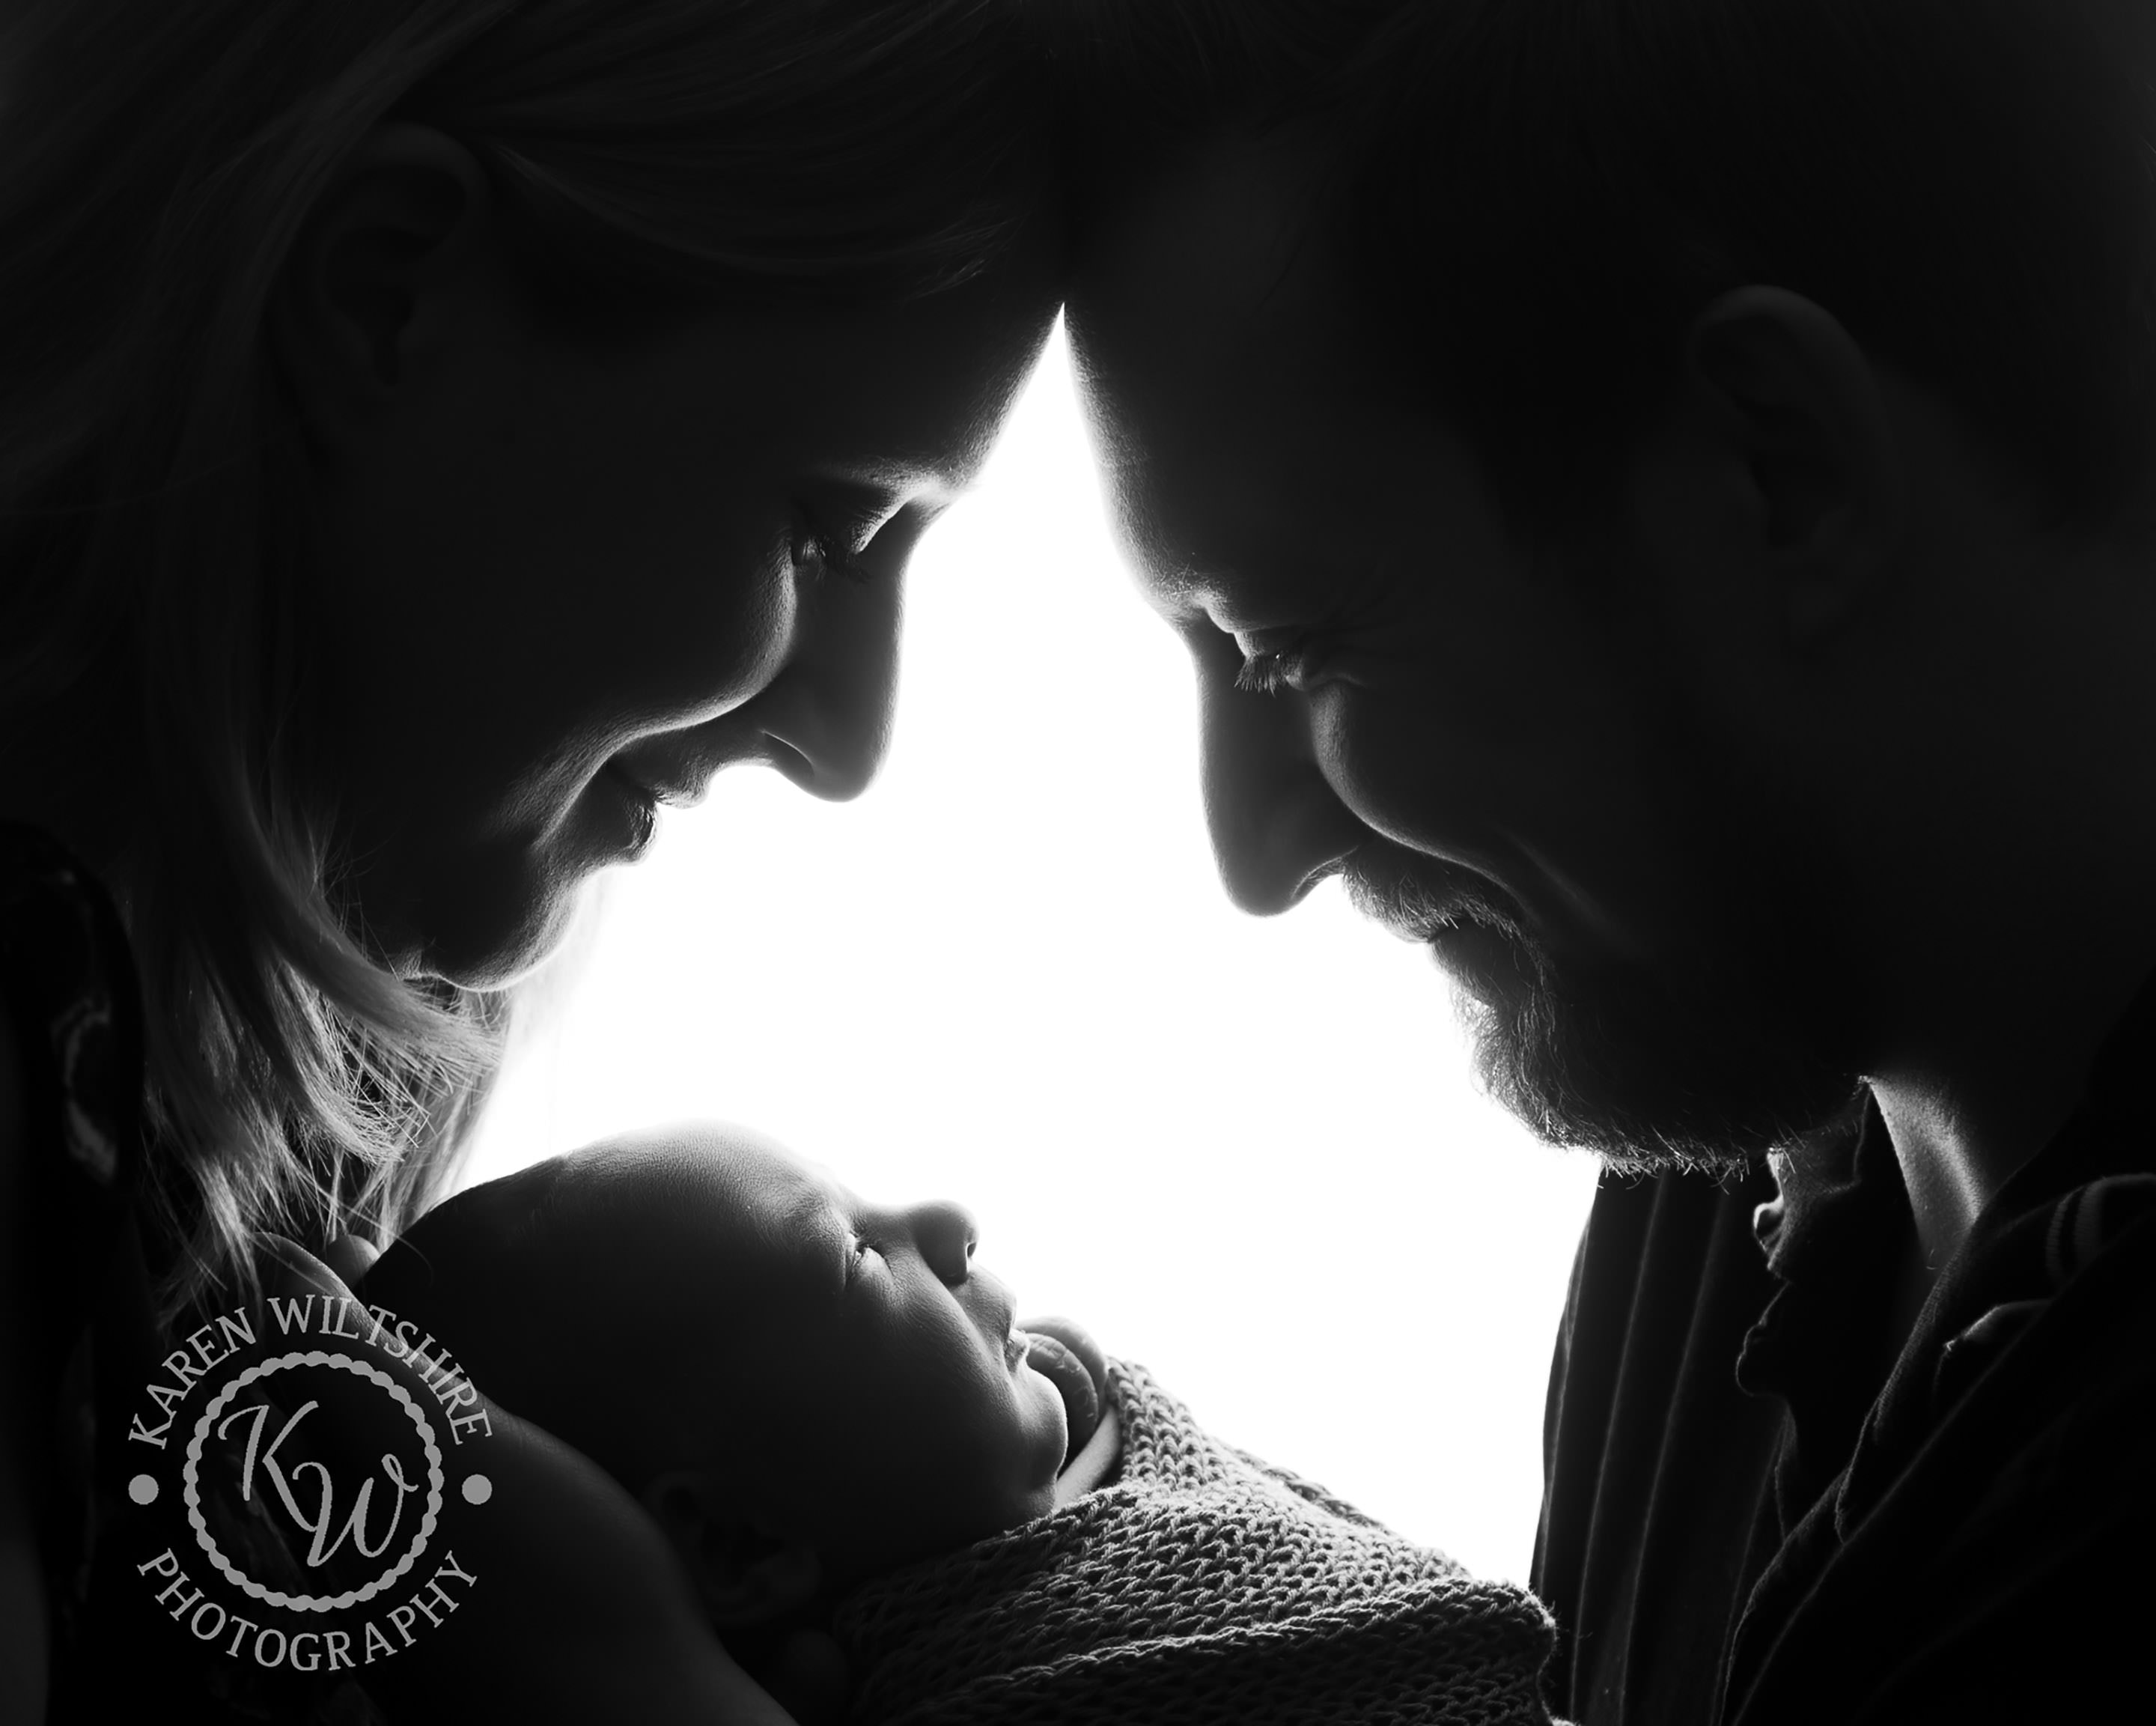 Parent of newborn baby boy smiling down at the baby